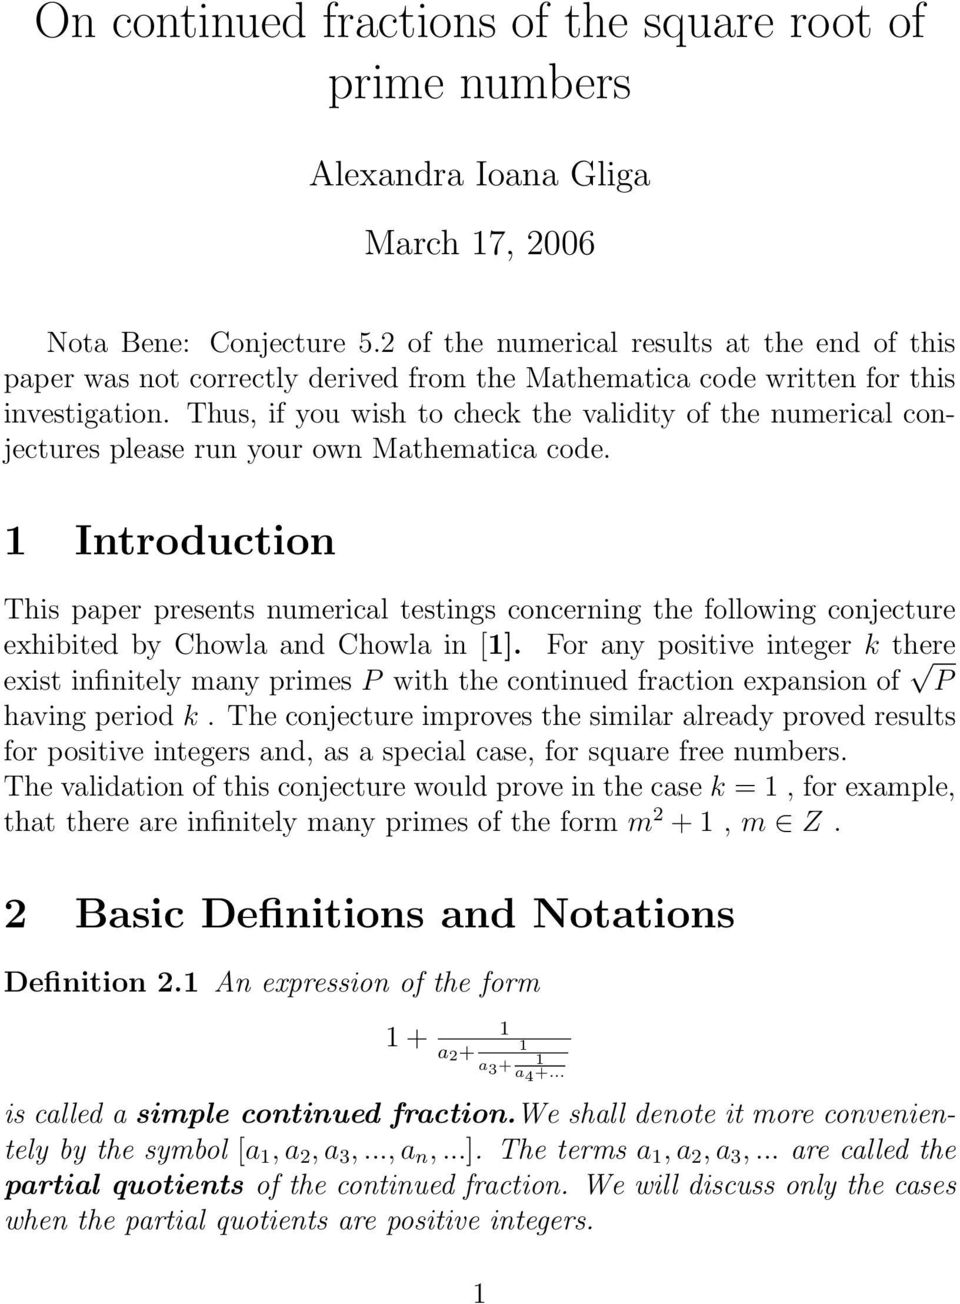 Thus, if you wish to check the validity of the numerical conjectures please run your own Mathematica code.